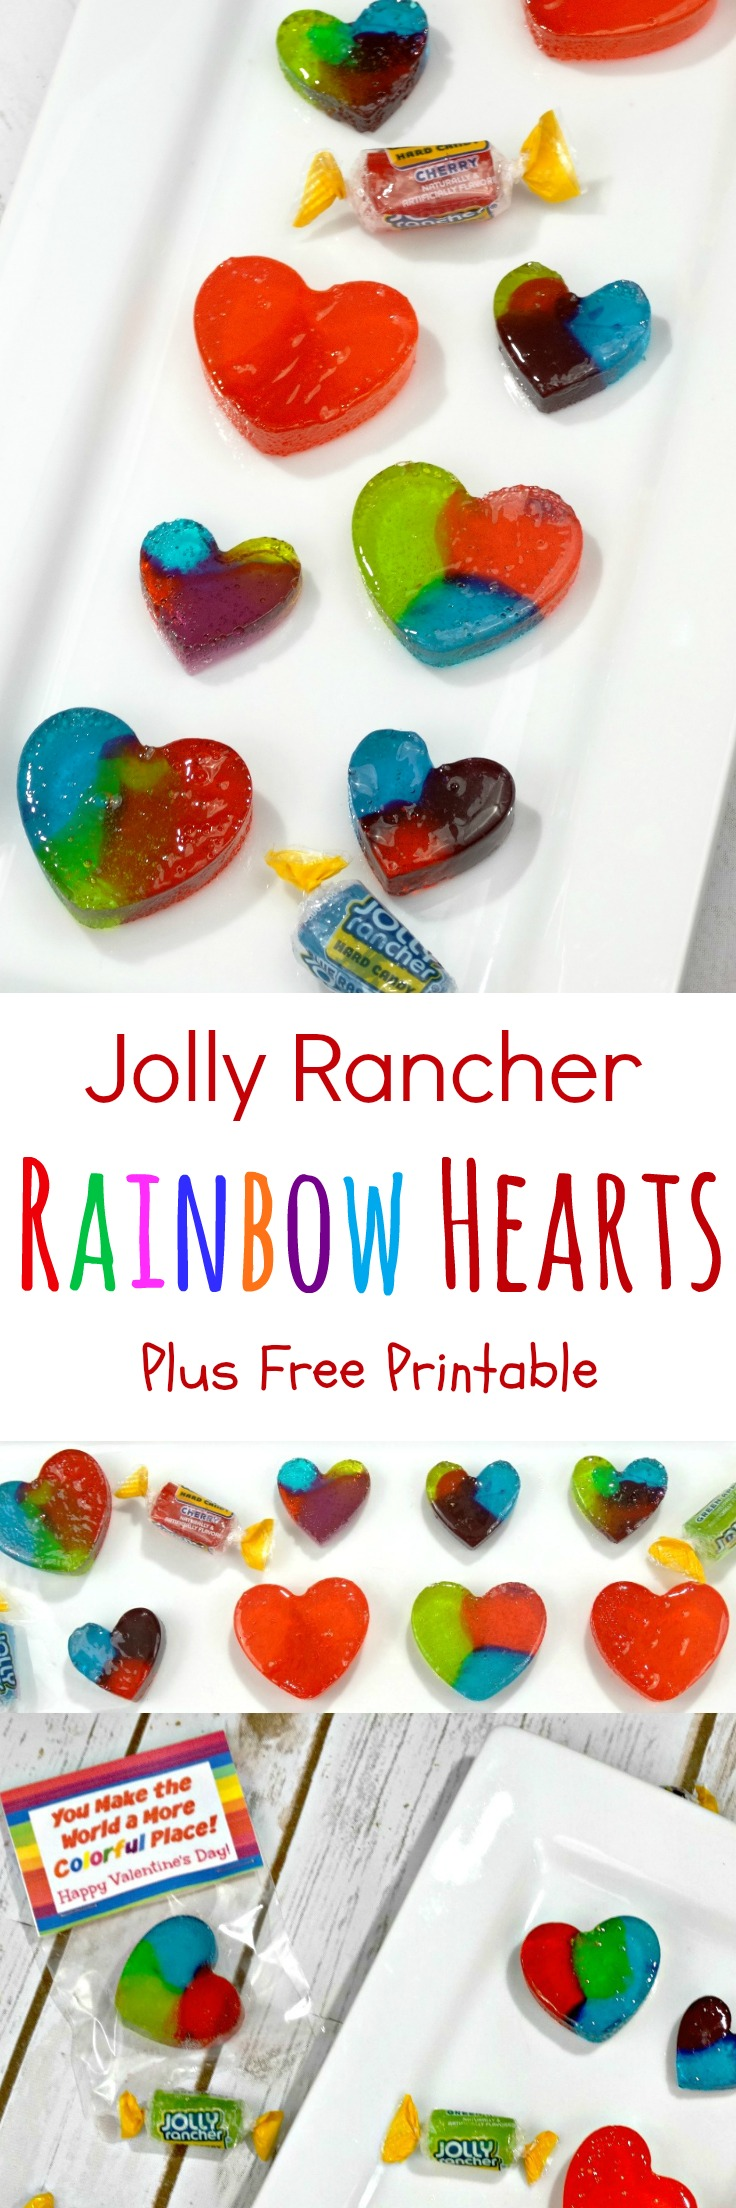 Paired with my free printable Valentine's Day Treat Bag Topper, these Jolly Rancher Homemade Rainbow Hearts Candy make for an adorable Valentine! #ValentinesDay #recipes #homemadecandy #DIYcandy